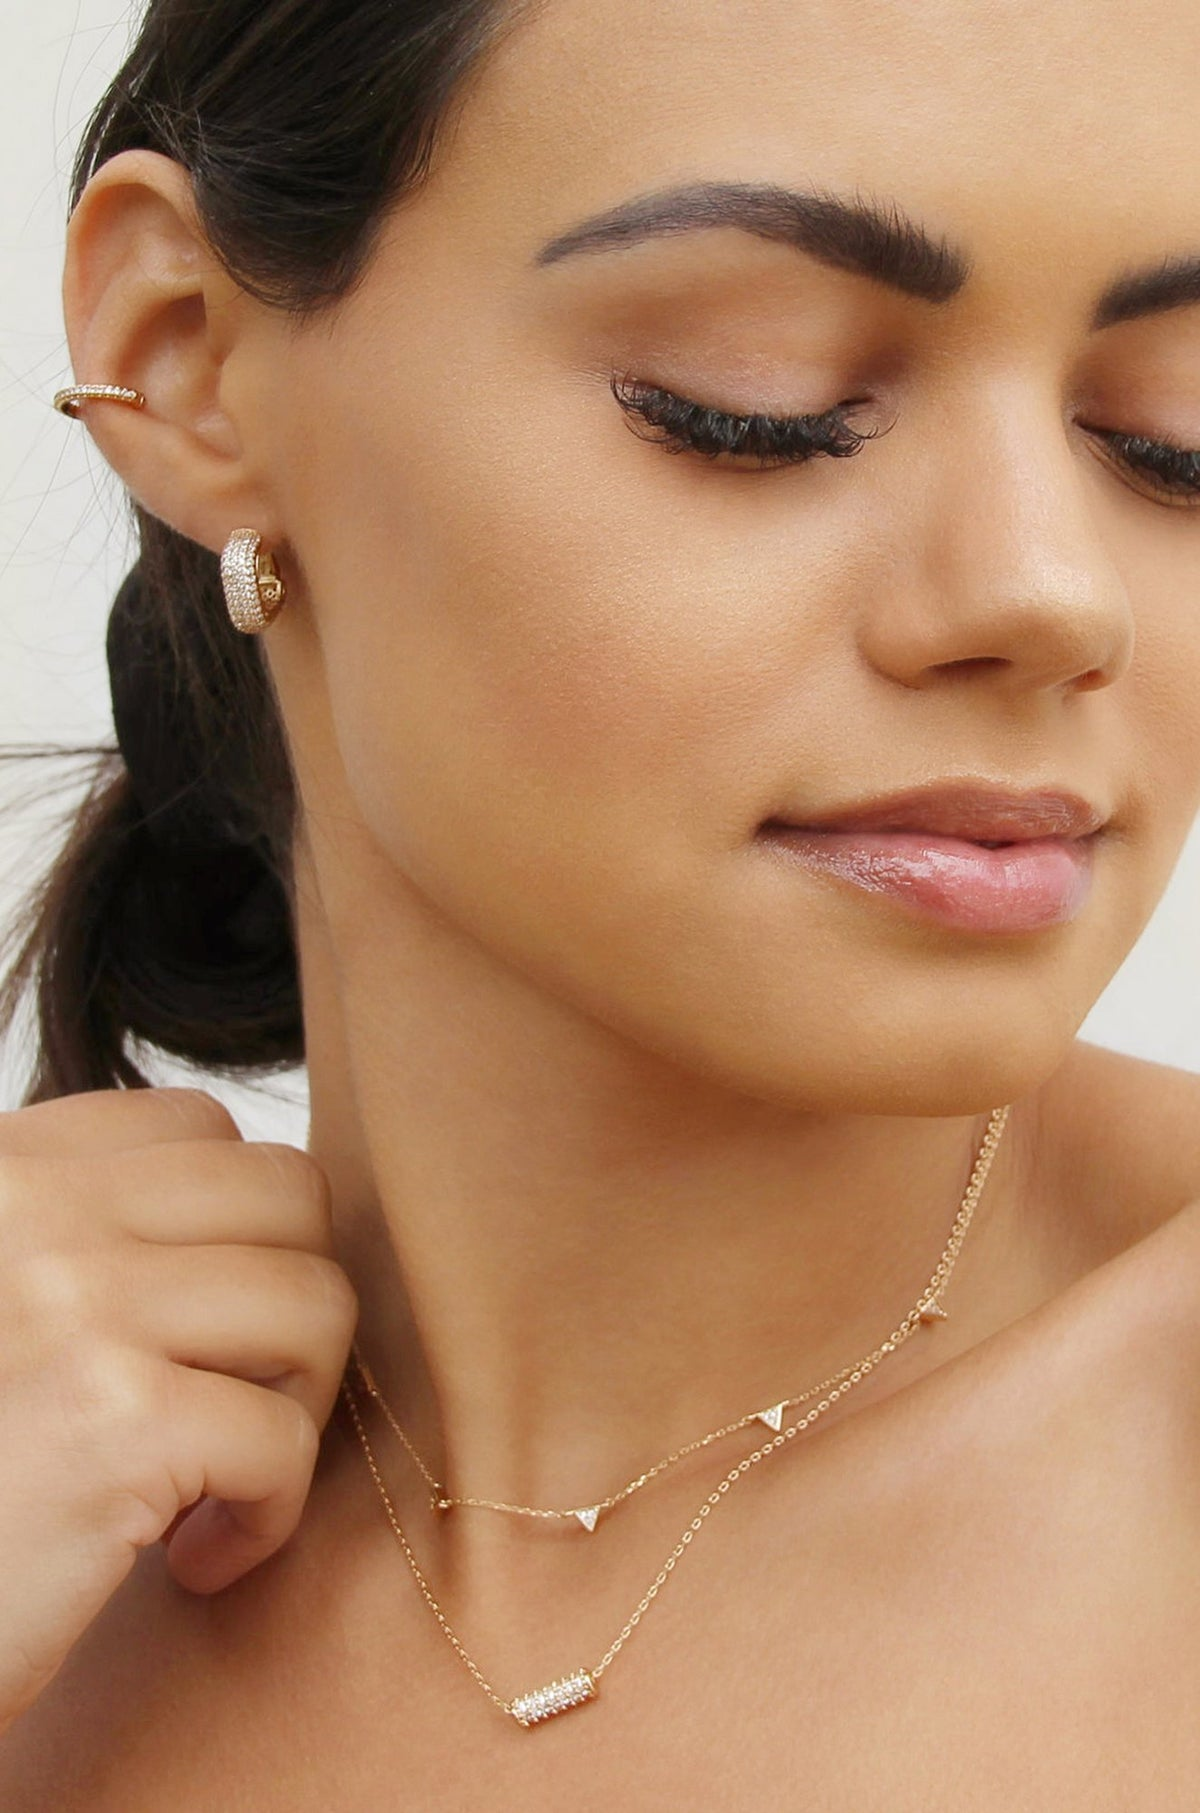 Ettika little reminders crystal mini hoop earrings - Izzy & Gab